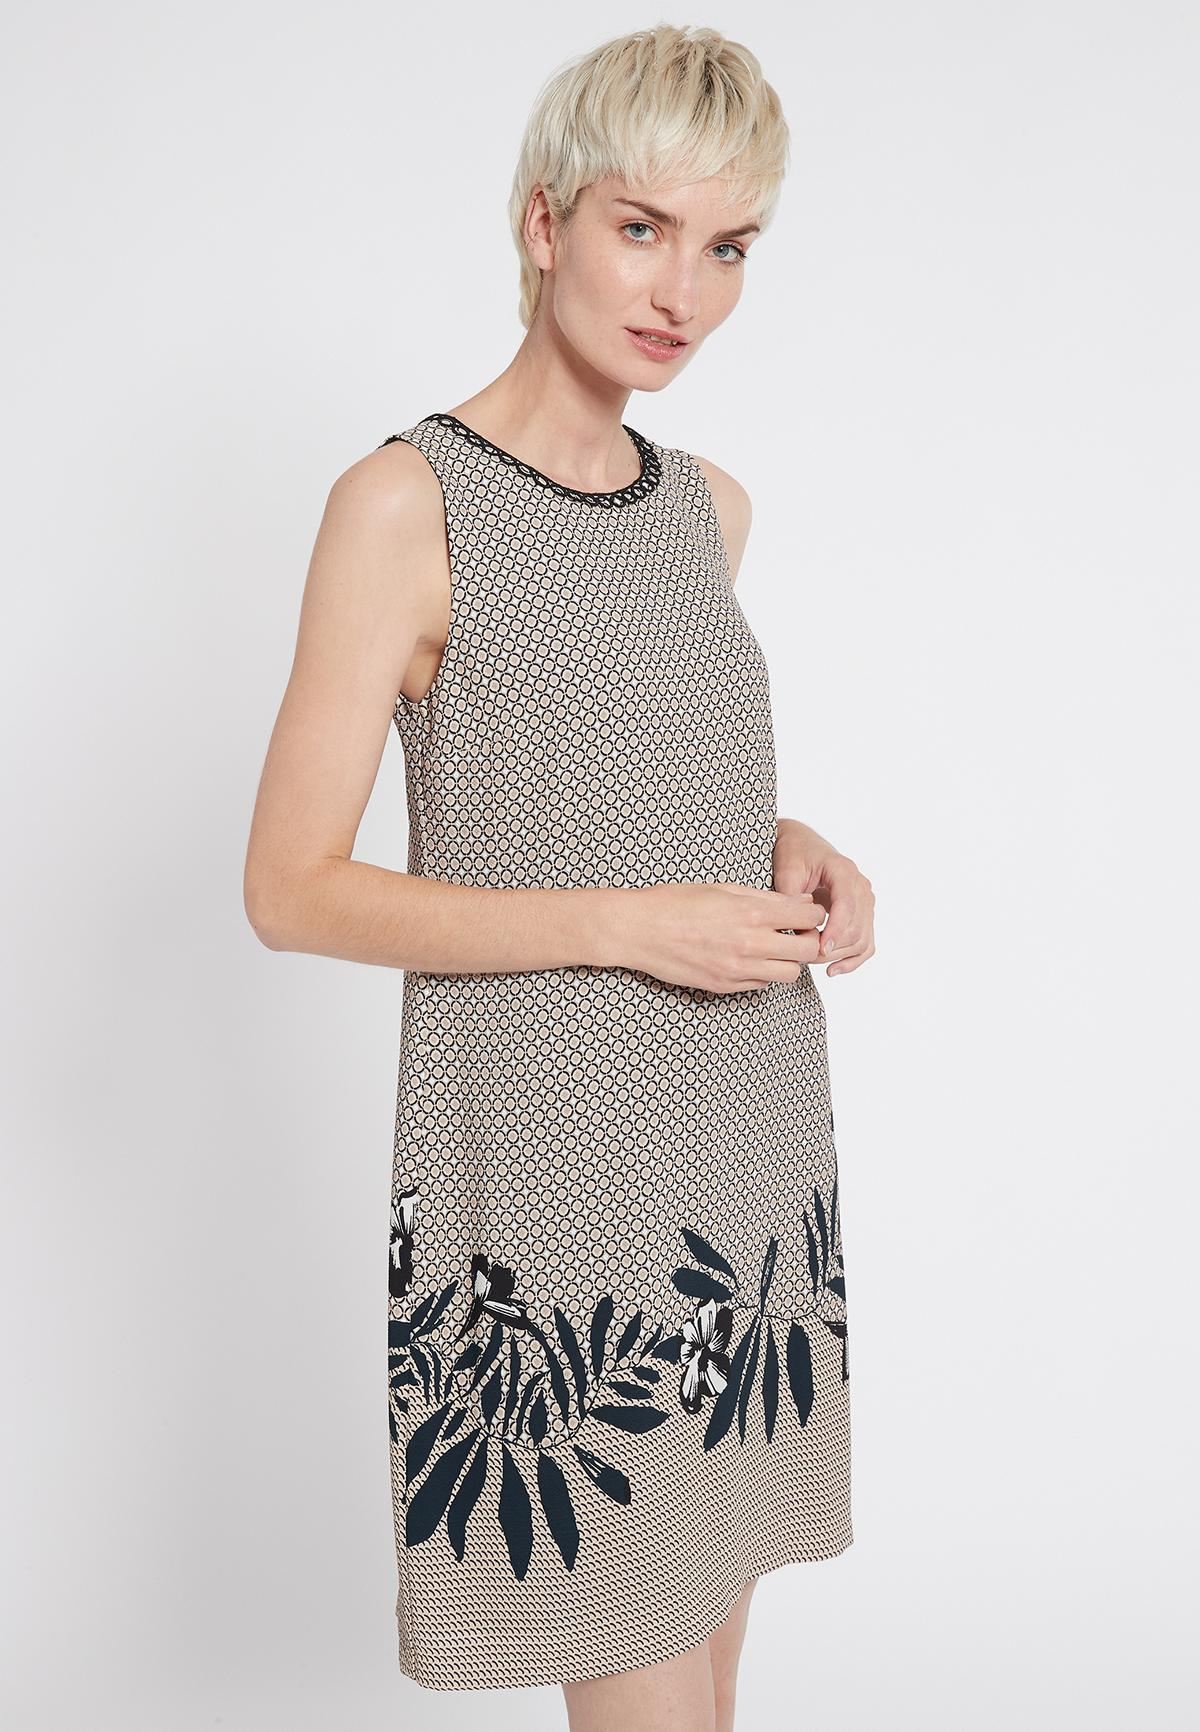 Front of Ana Alcazar Sleeveless Dress Sedoni  worn by model